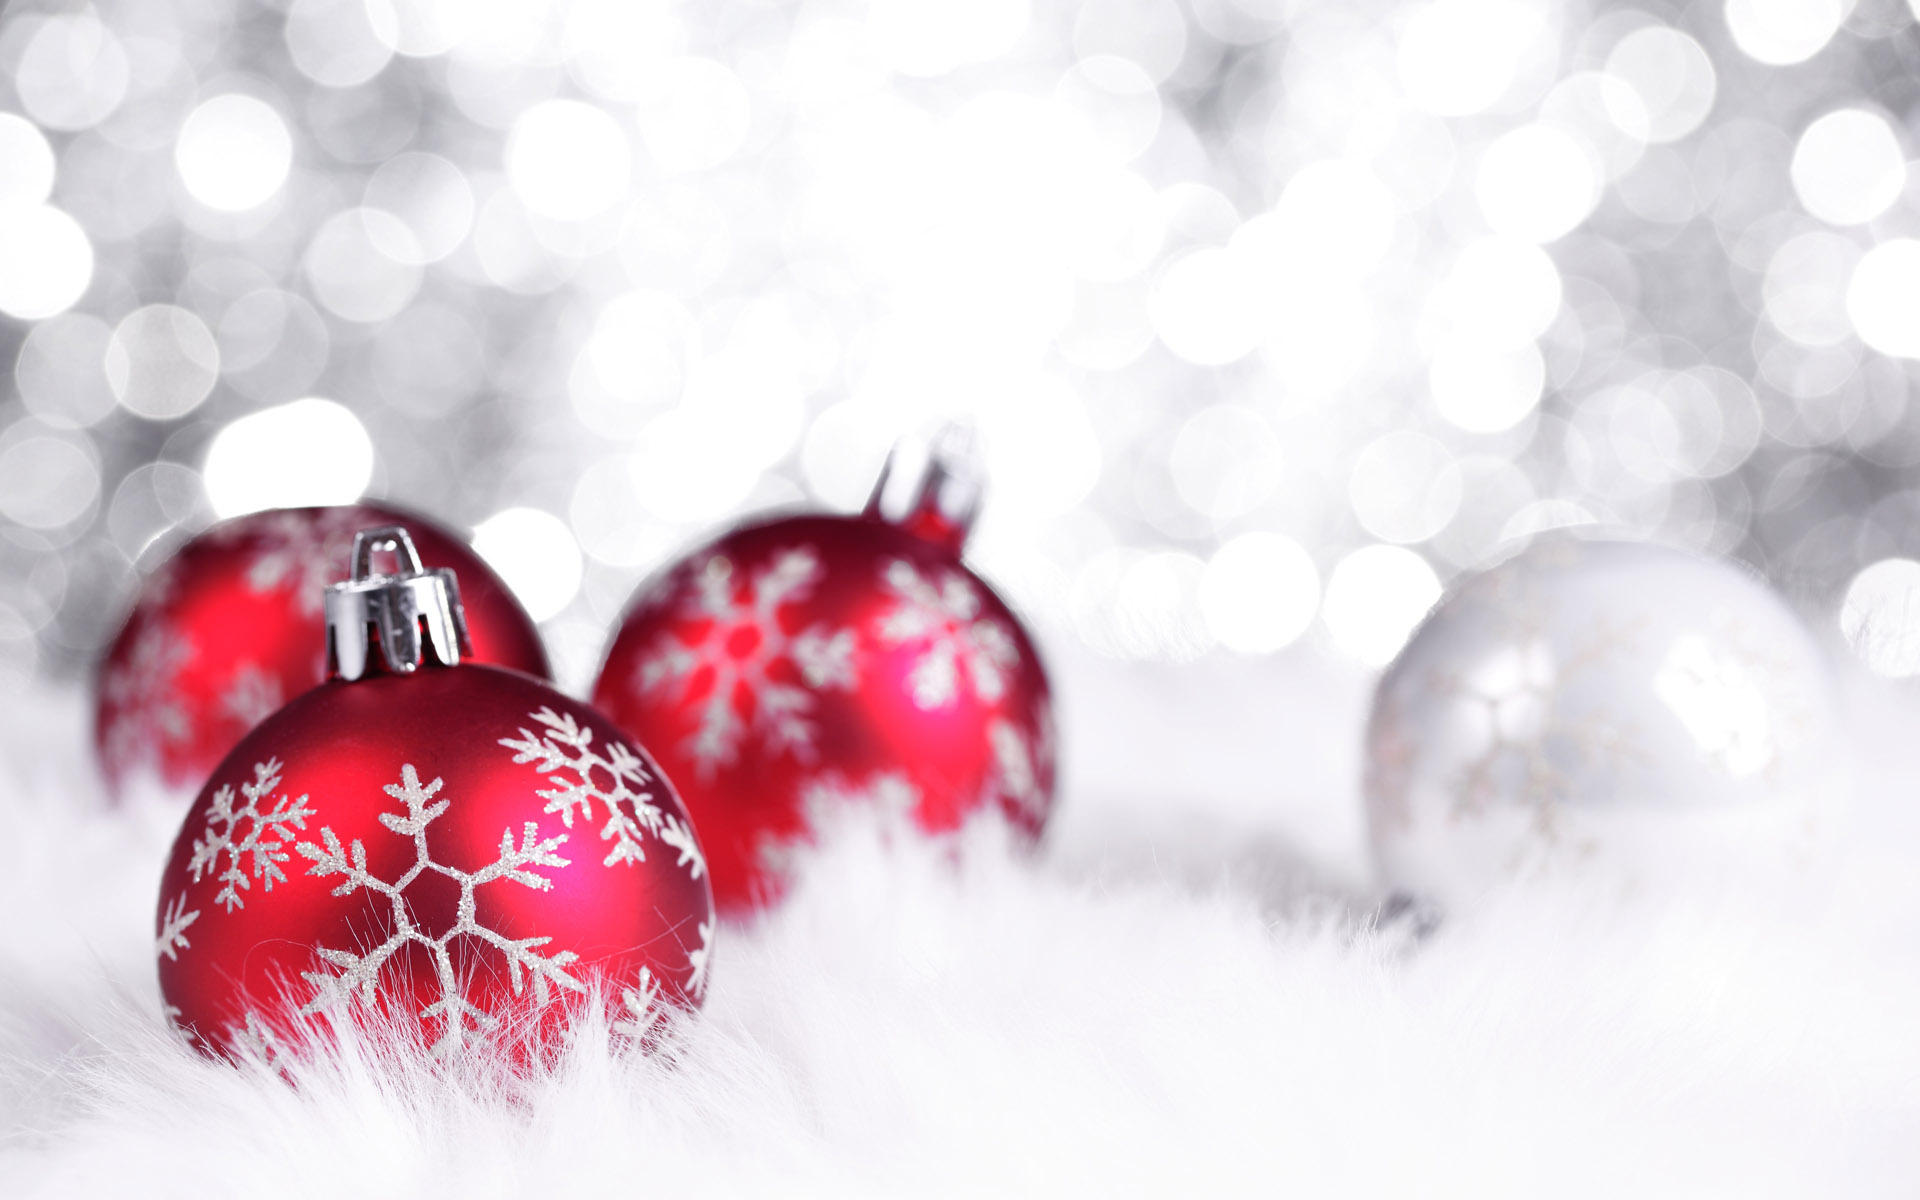 Best-Colorful-Christmas-Wallpapers-8